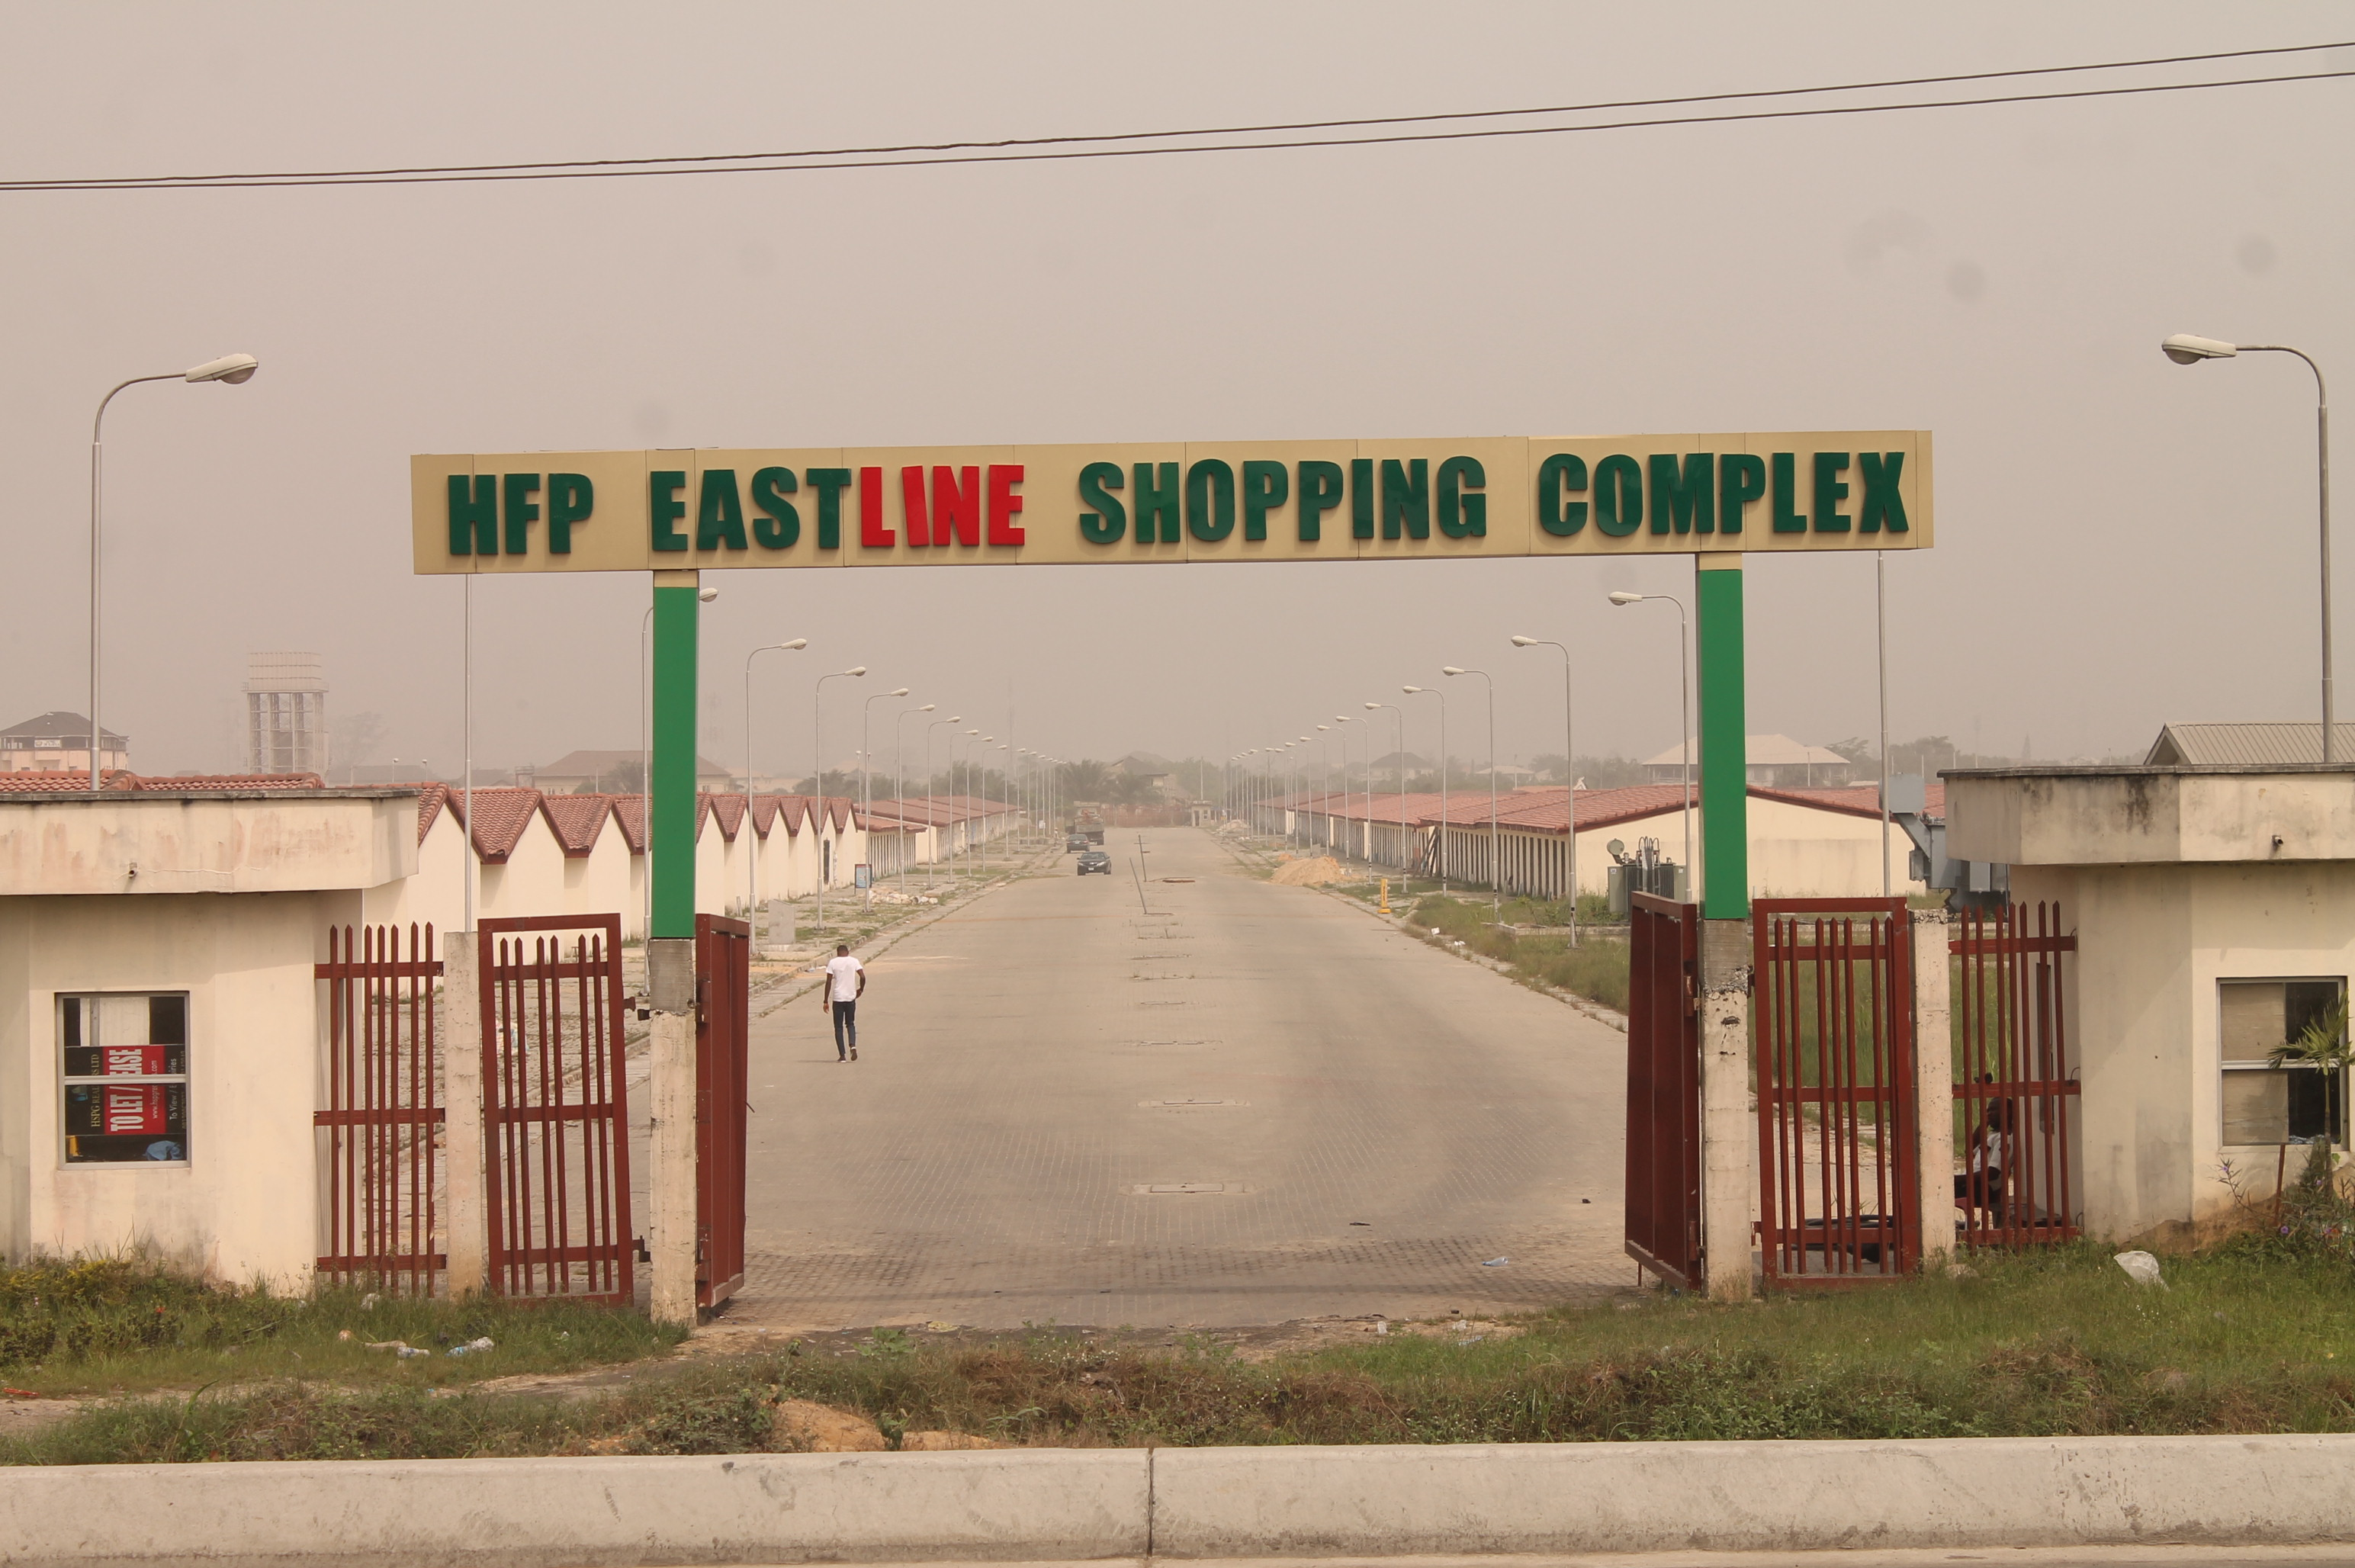 Eastline Shopping Complex